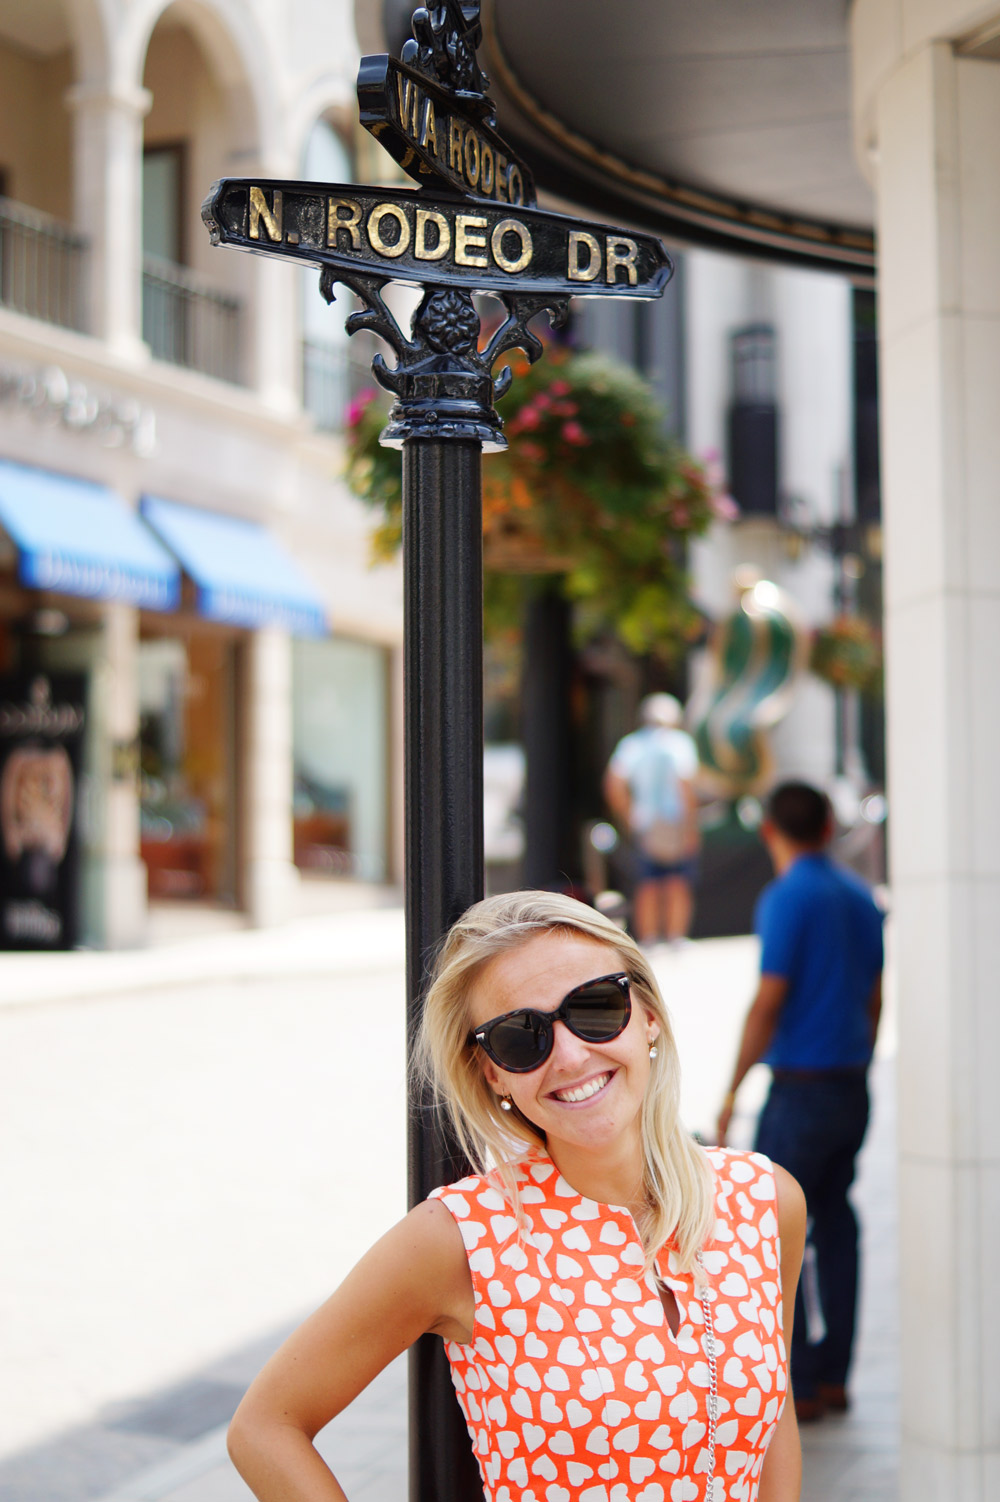 Bag-at-you---Travel-blog---Rodeo-Drive---Los-Angeles